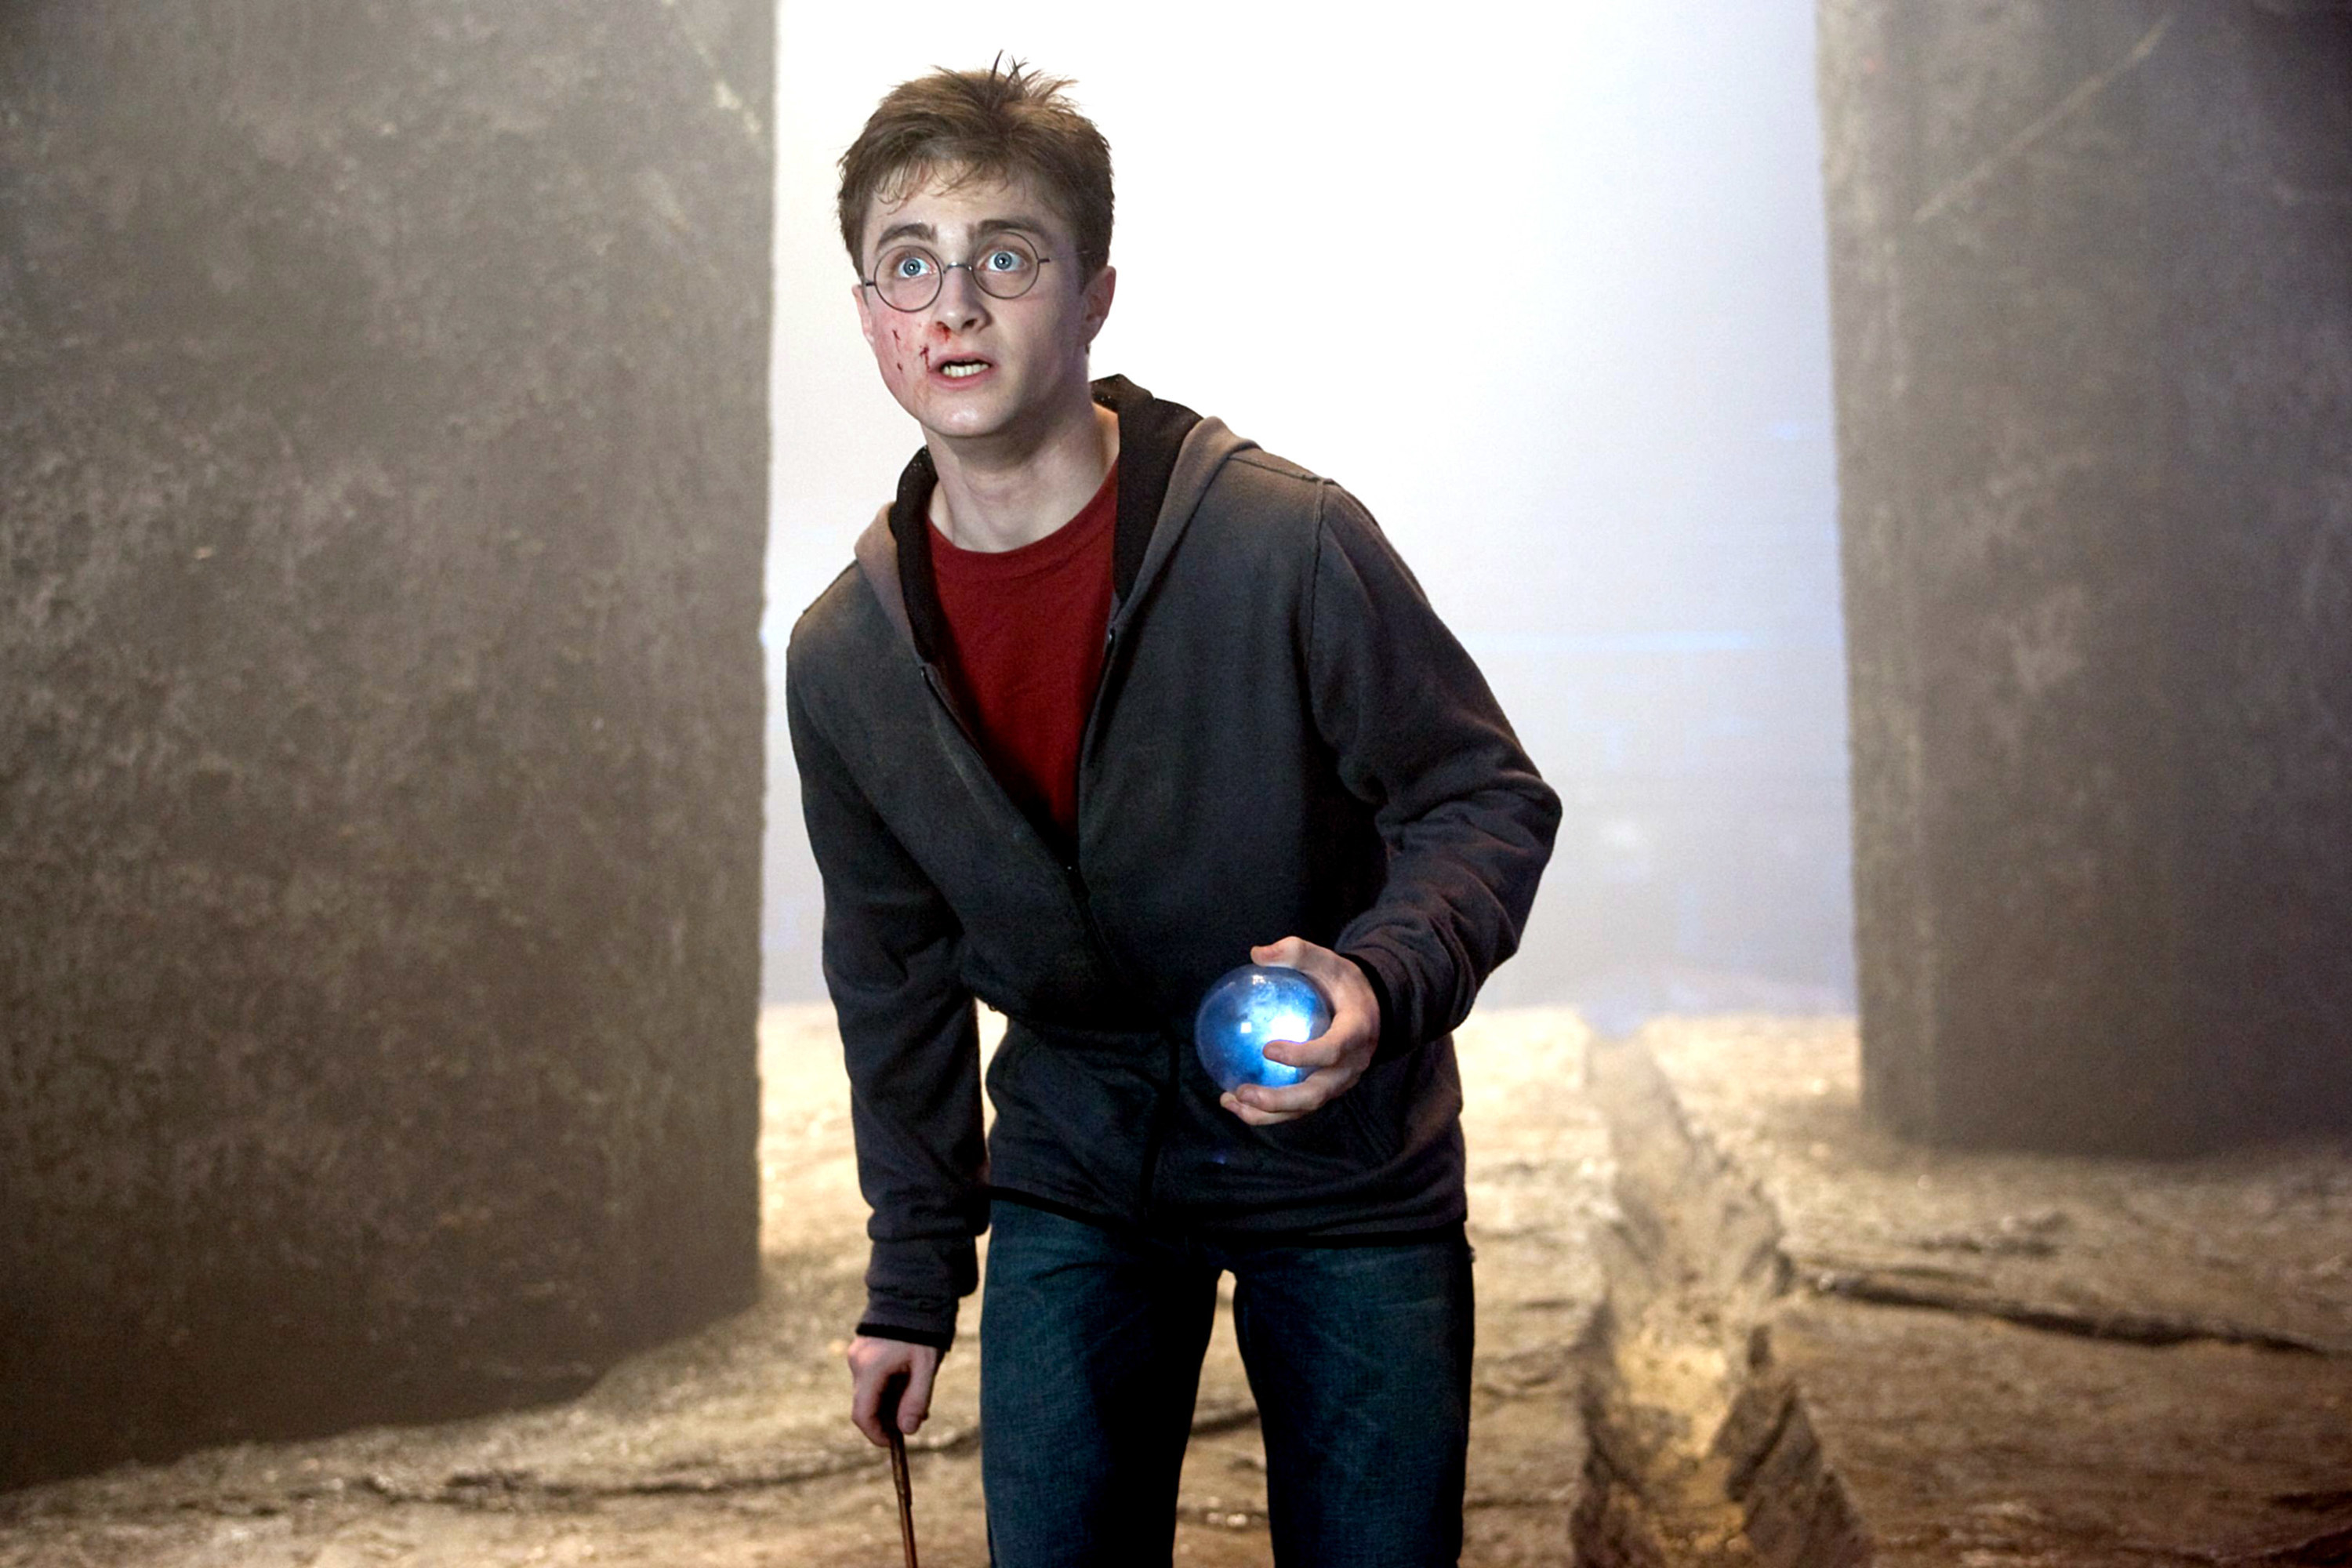 Radcliffe clutches an orb and brandishes his wand at his side as Harry Potter